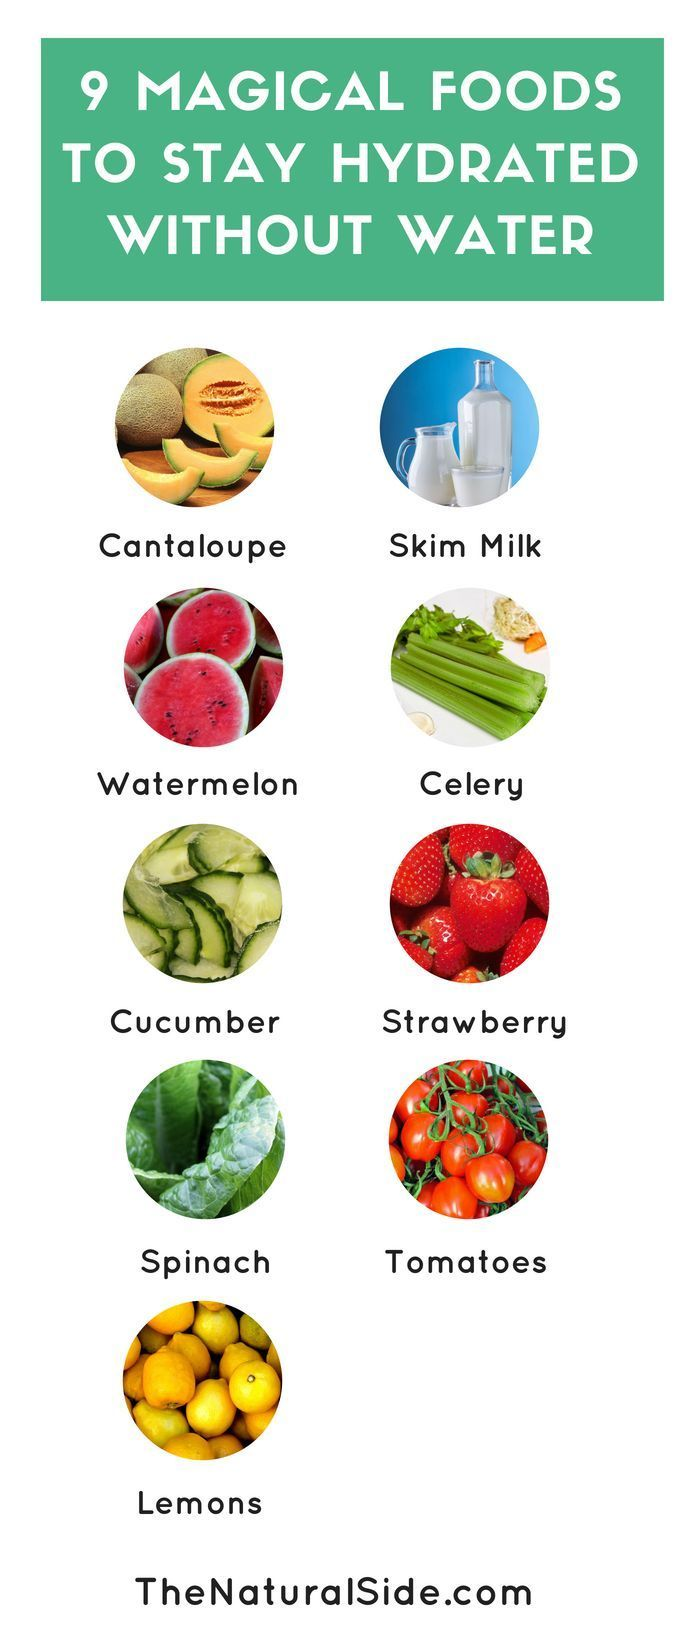 9 Magical Foods To Stay Hydrated Without Water How To Hydrate Your Body With Water Rich Foods Waterrich Healthy Hydration Healthy Food Guide Stay Hydrated